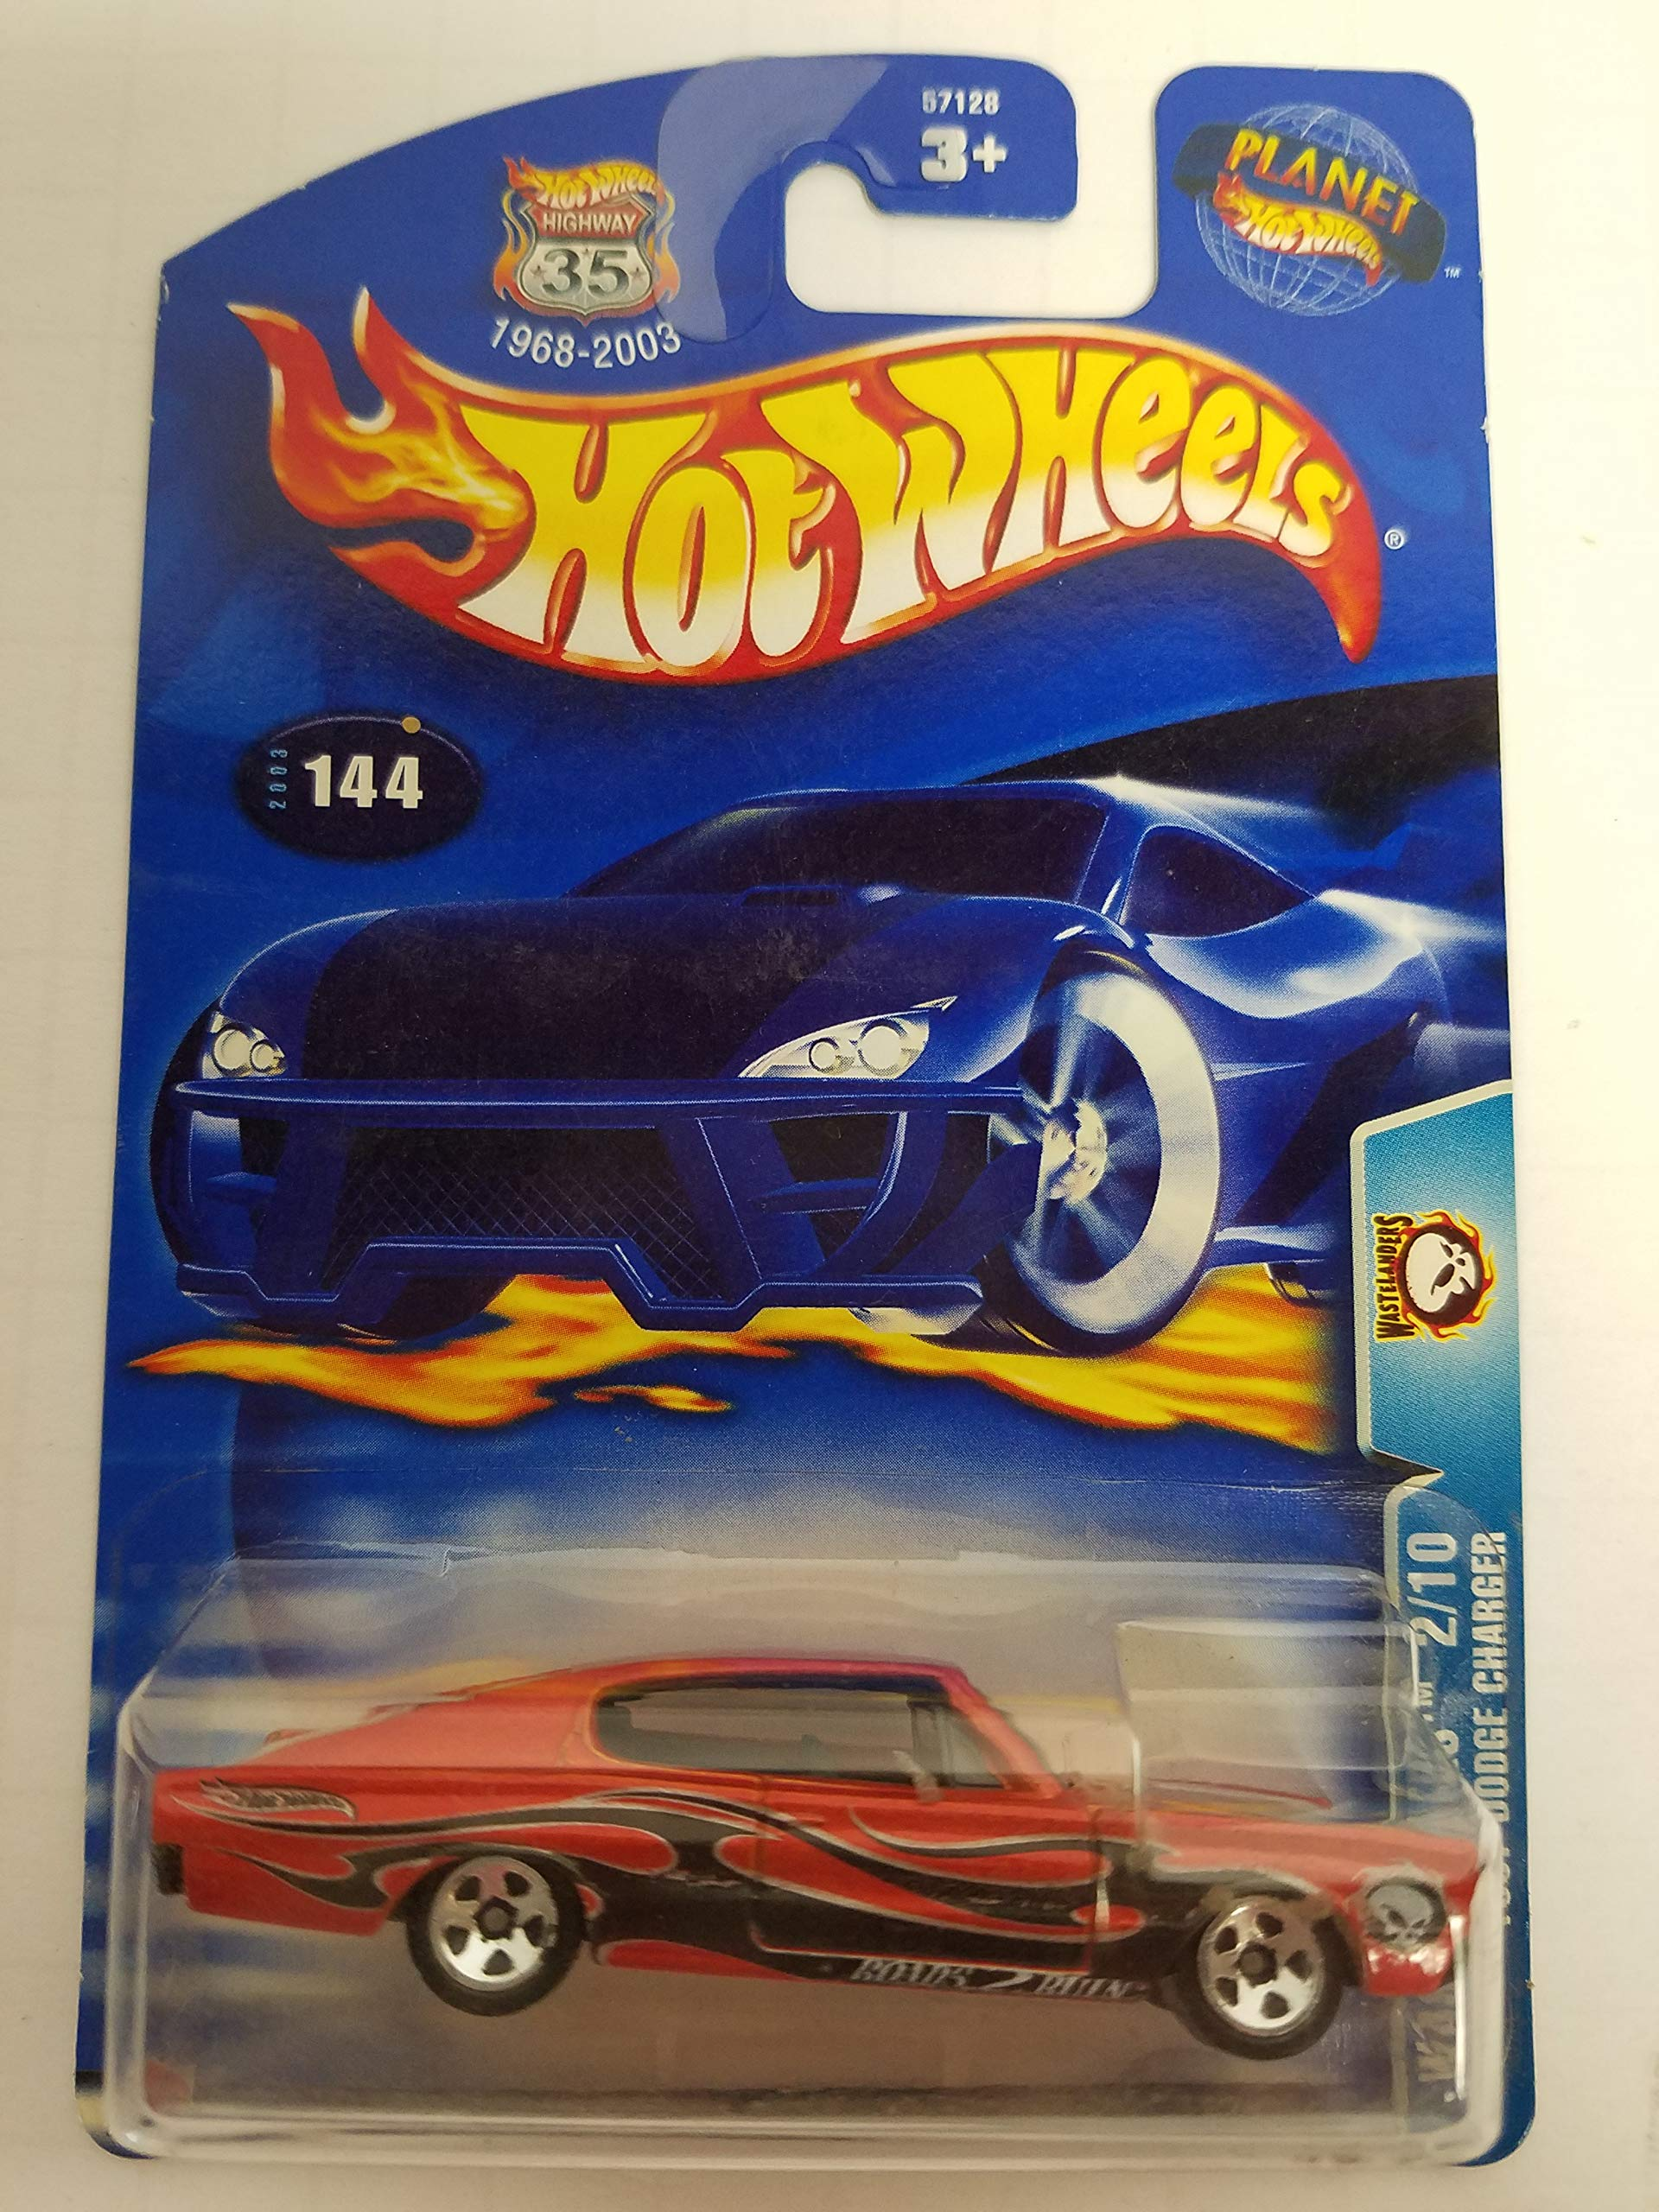 1967 Dodge Charger Wastelanders 2/10 2003 Hot Wheels diecast car No. 144